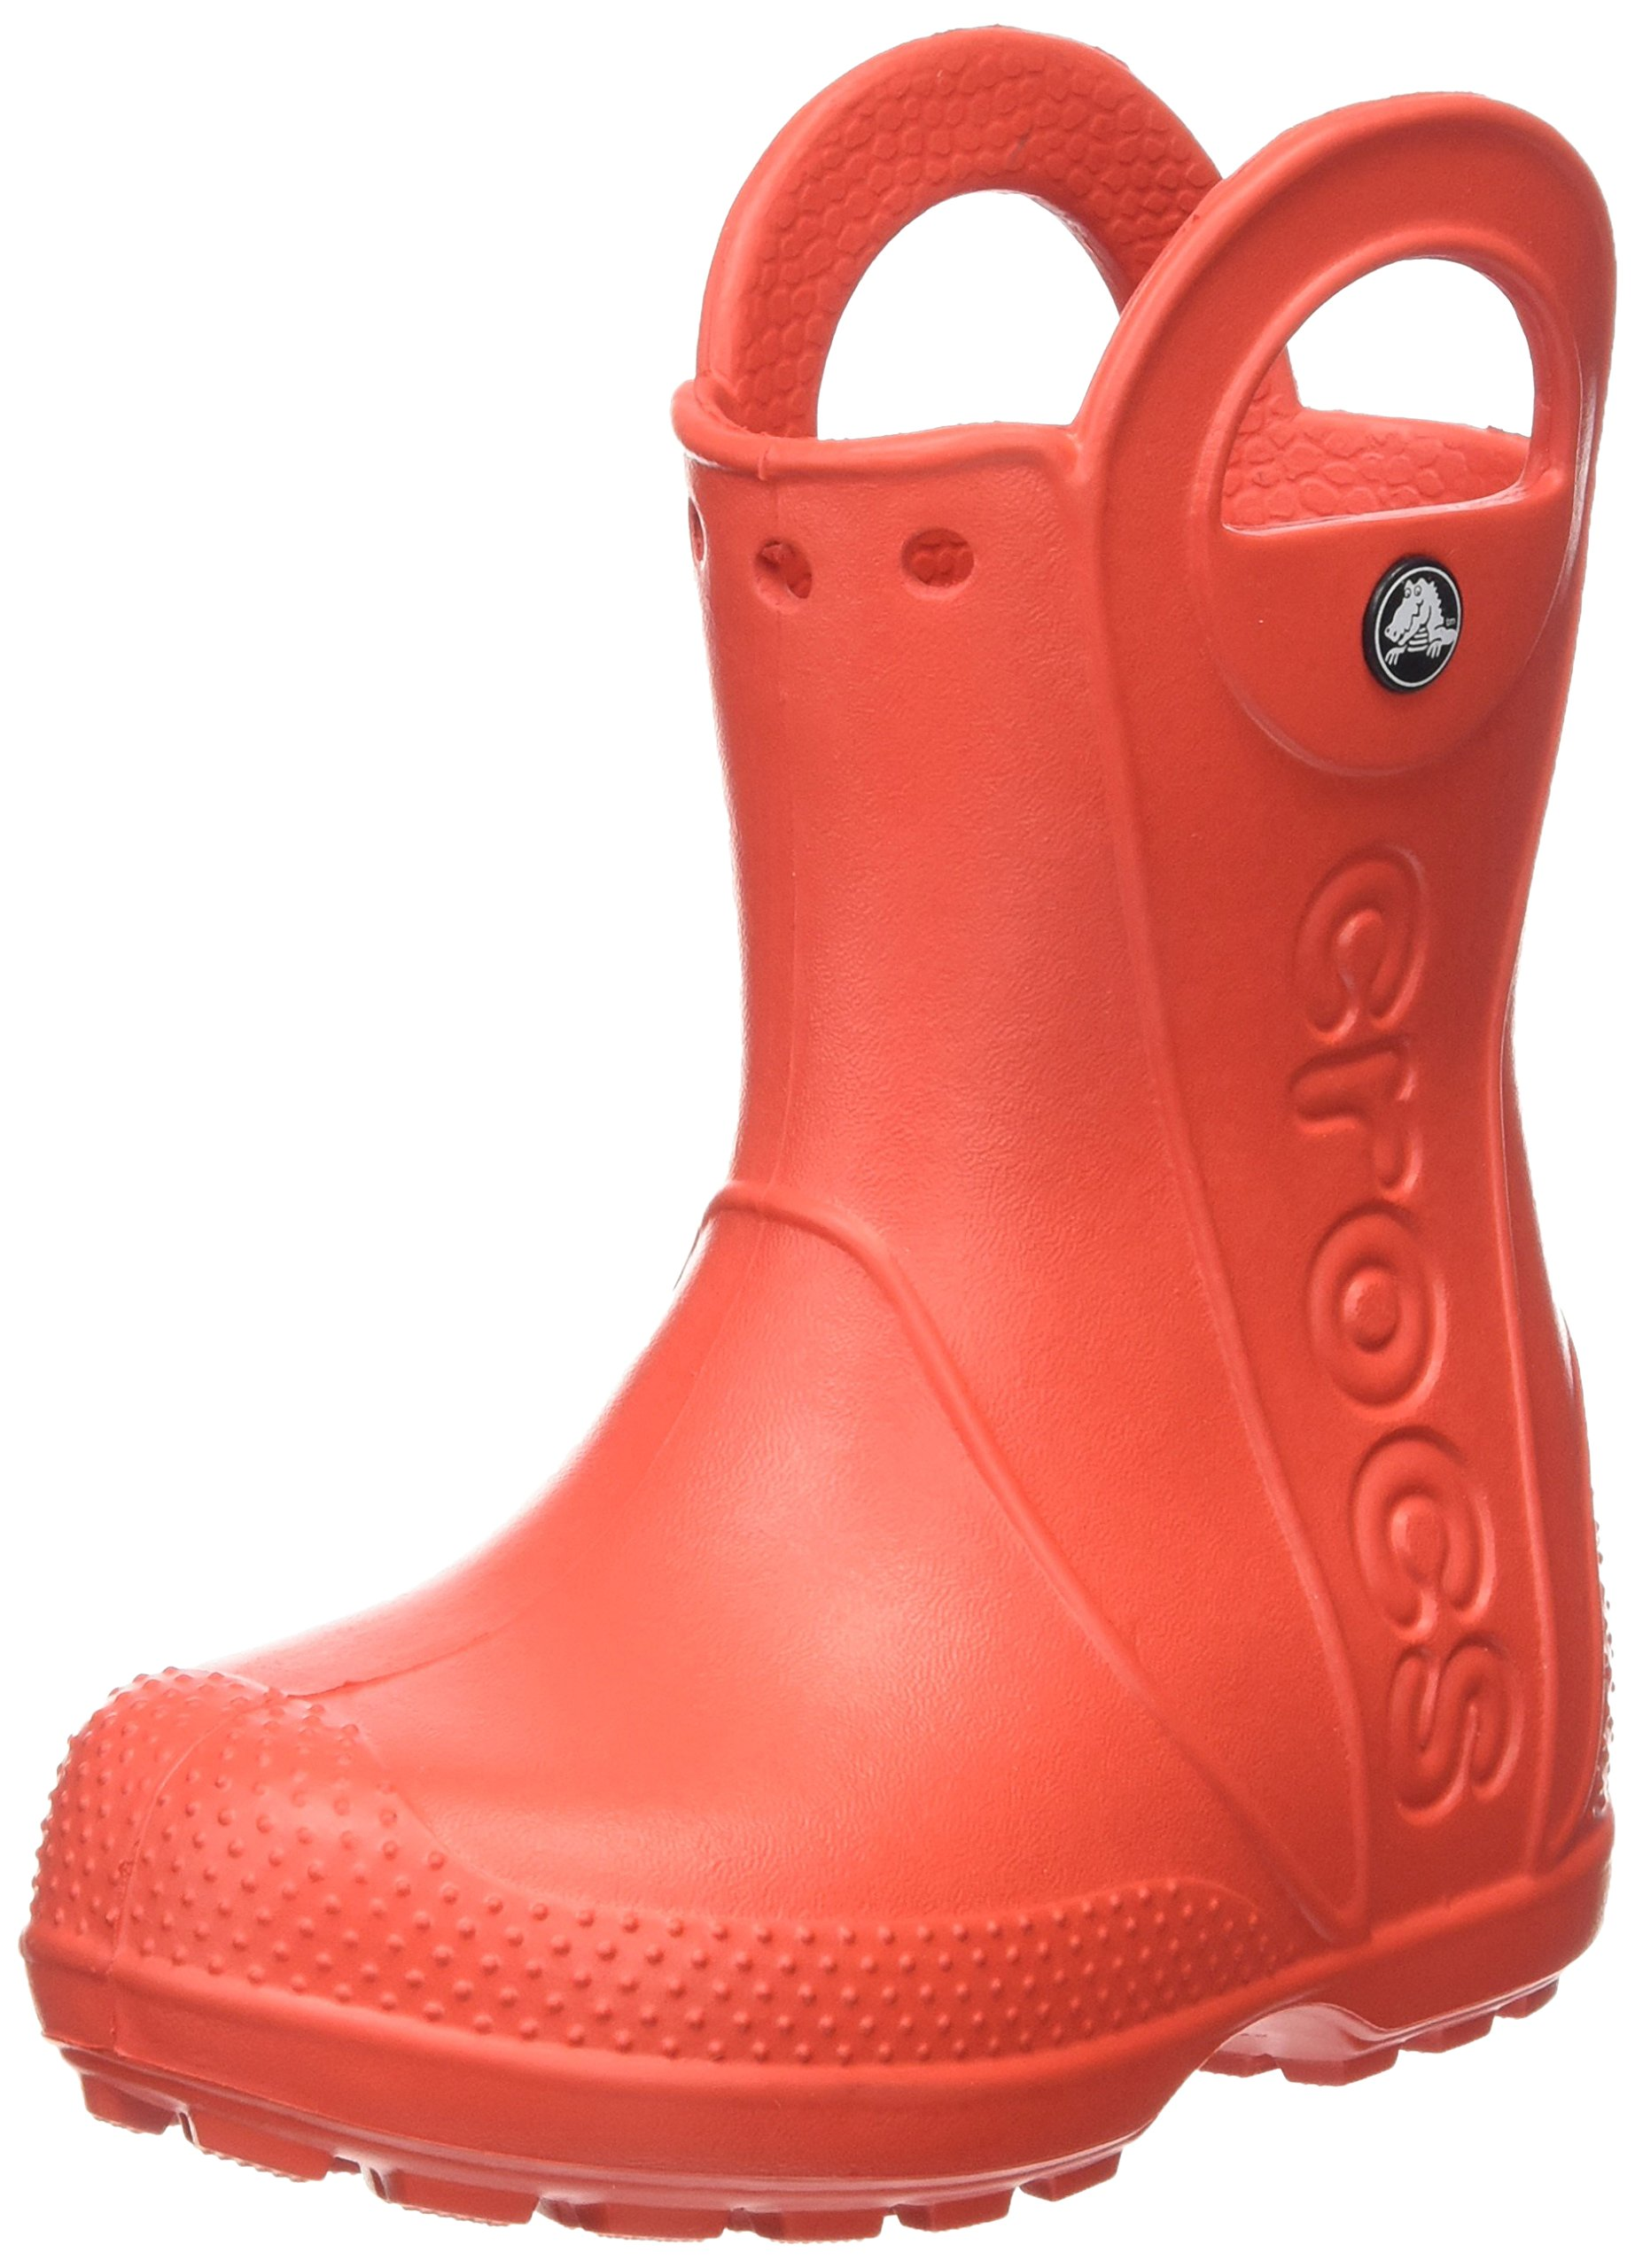 Crocs Kids' Handle It Rain Boot, Flame, 8 M US Toddler